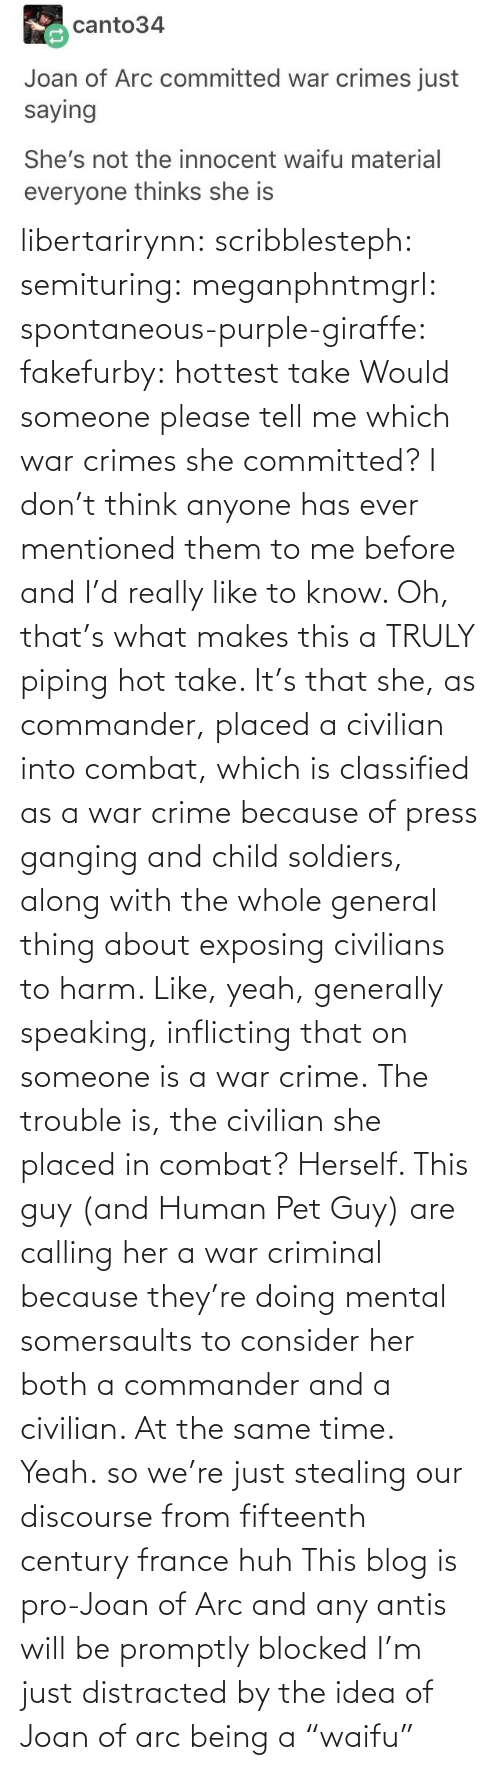 "Before: libertarirynn: scribblesteph:  semituring:  meganphntmgrl:  spontaneous-purple-giraffe:   fakefurby: hottest take  Would someone please tell me which war crimes she committed? I don't think anyone has ever mentioned them to me before and I'd really like to know.    Oh, that's what makes this a TRULY piping hot take. It's that she, as commander, placed a civilian into combat, which is classified as a war crime because of press ganging and child soldiers, along with the whole general thing about exposing civilians to harm. Like, yeah, generally speaking, inflicting that on someone is a war crime. The trouble is, the civilian she placed in combat? Herself.  This guy (and Human Pet Guy) are calling her a war criminal because they're doing mental somersaults to consider her both a commander and a civilian. At the same time.  Yeah.  so we're just stealing our discourse from fifteenth century france huh   This blog is pro-Joan of Arc and any antis will be promptly blocked   I'm just distracted by the idea of Joan of arc being a ""waifu"""